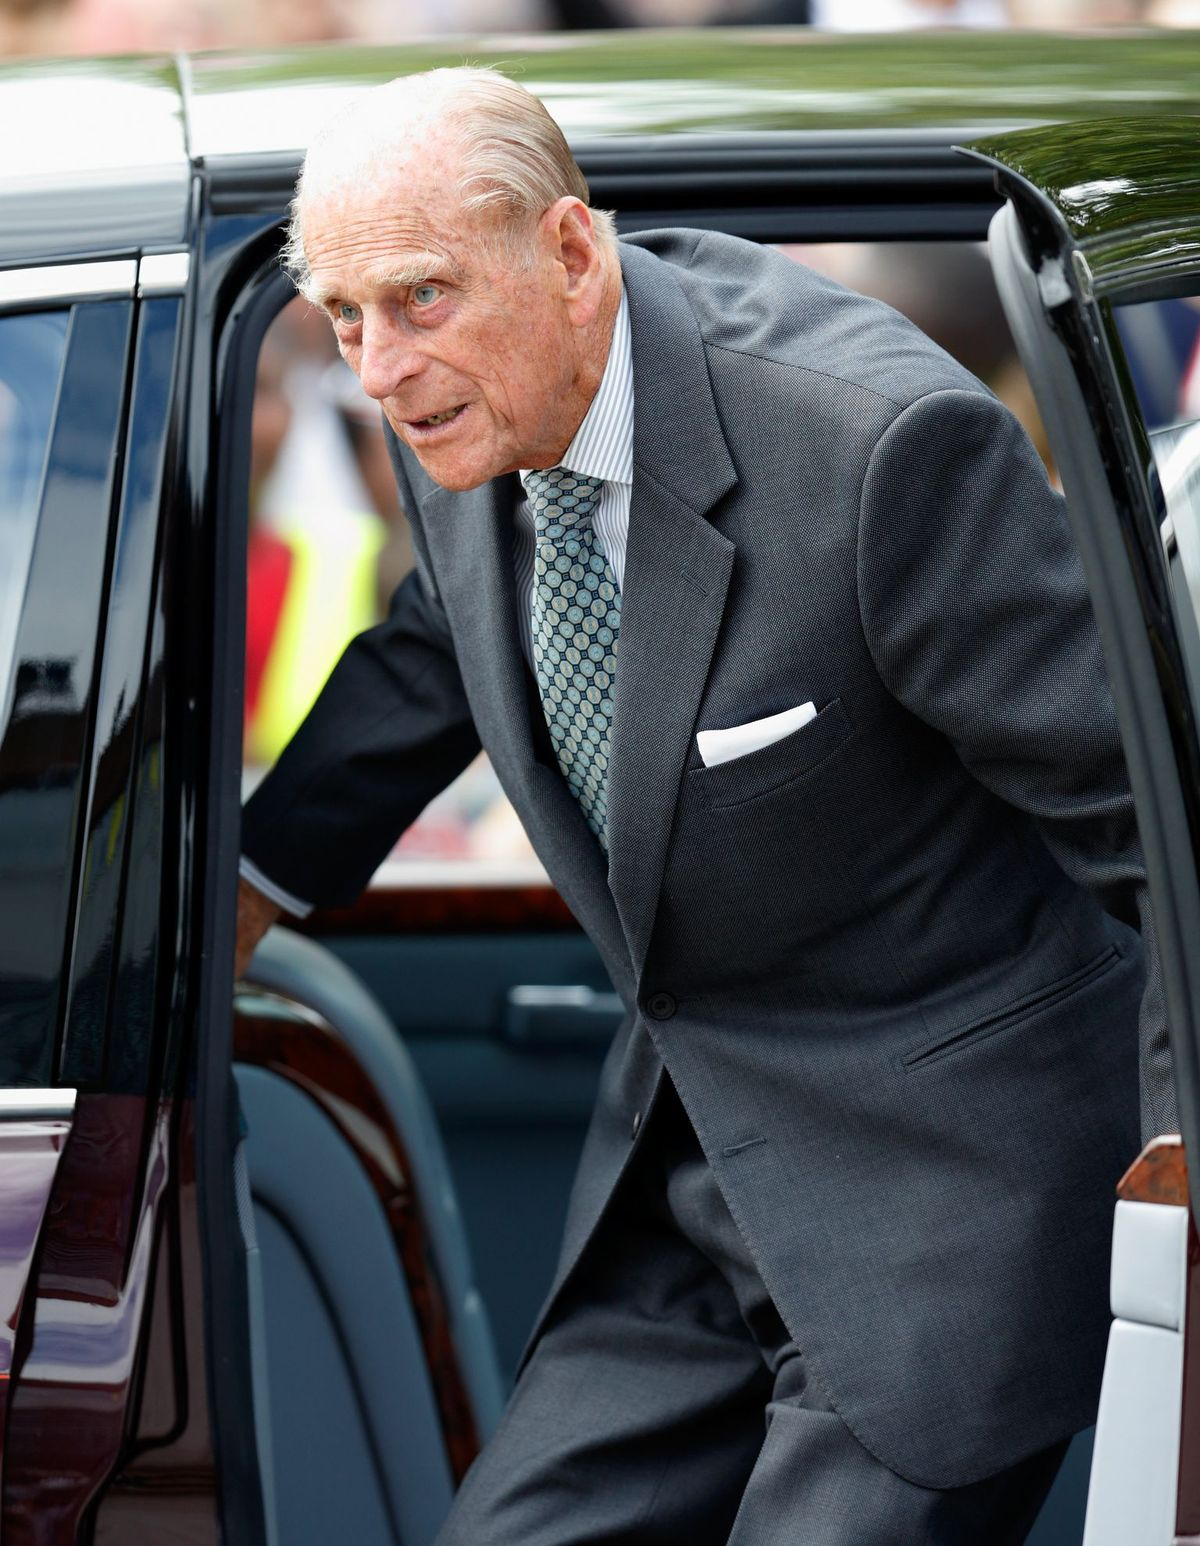 Le prince Philip qui sort de sa voiture | Photo : Getty Images